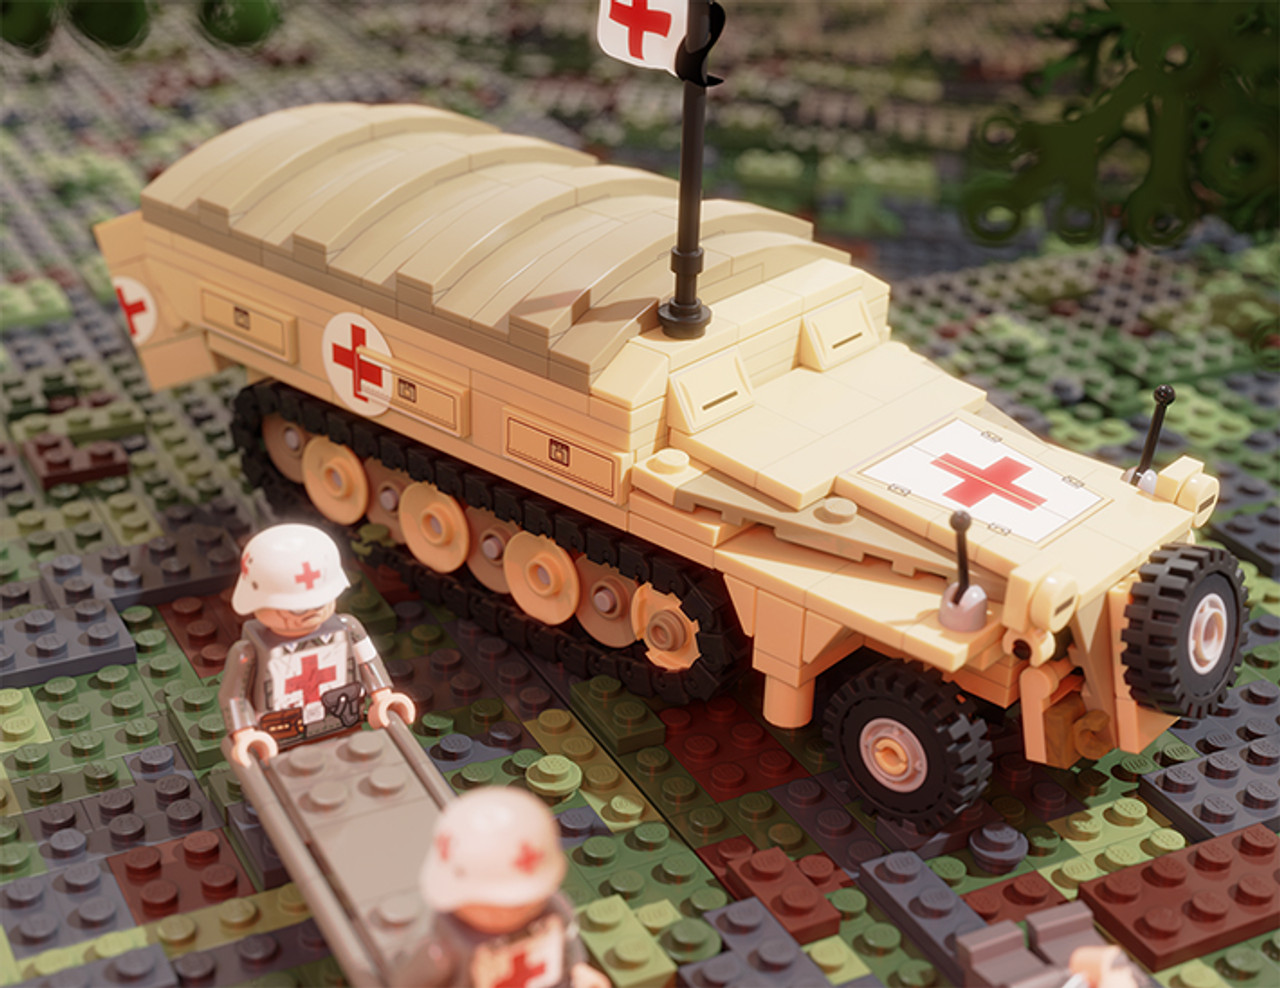 Krankenpanzerwagen - Ambulance Pack for SdKfz 251 Ausf D (BKM2237)